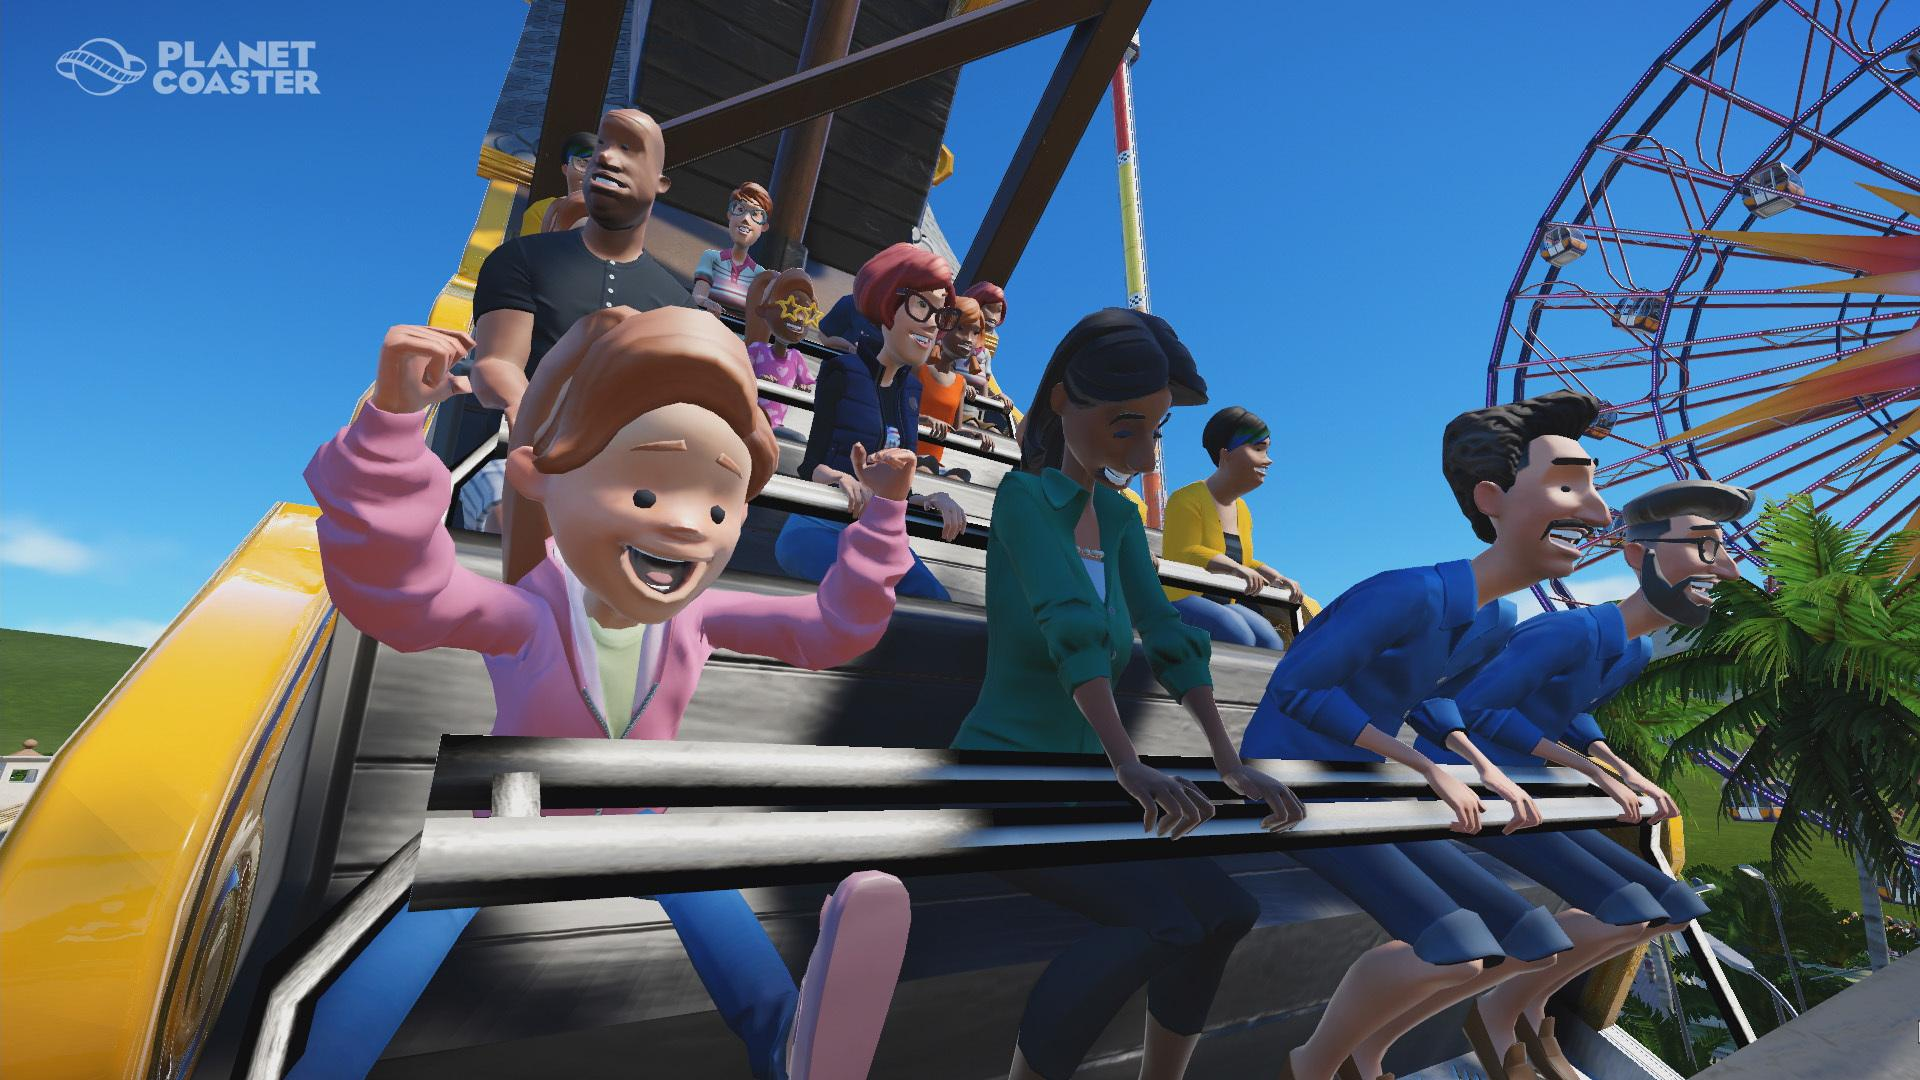 """Planet Coaster"" Gameplay Trailer Released - Wheeeeeeee!!!"